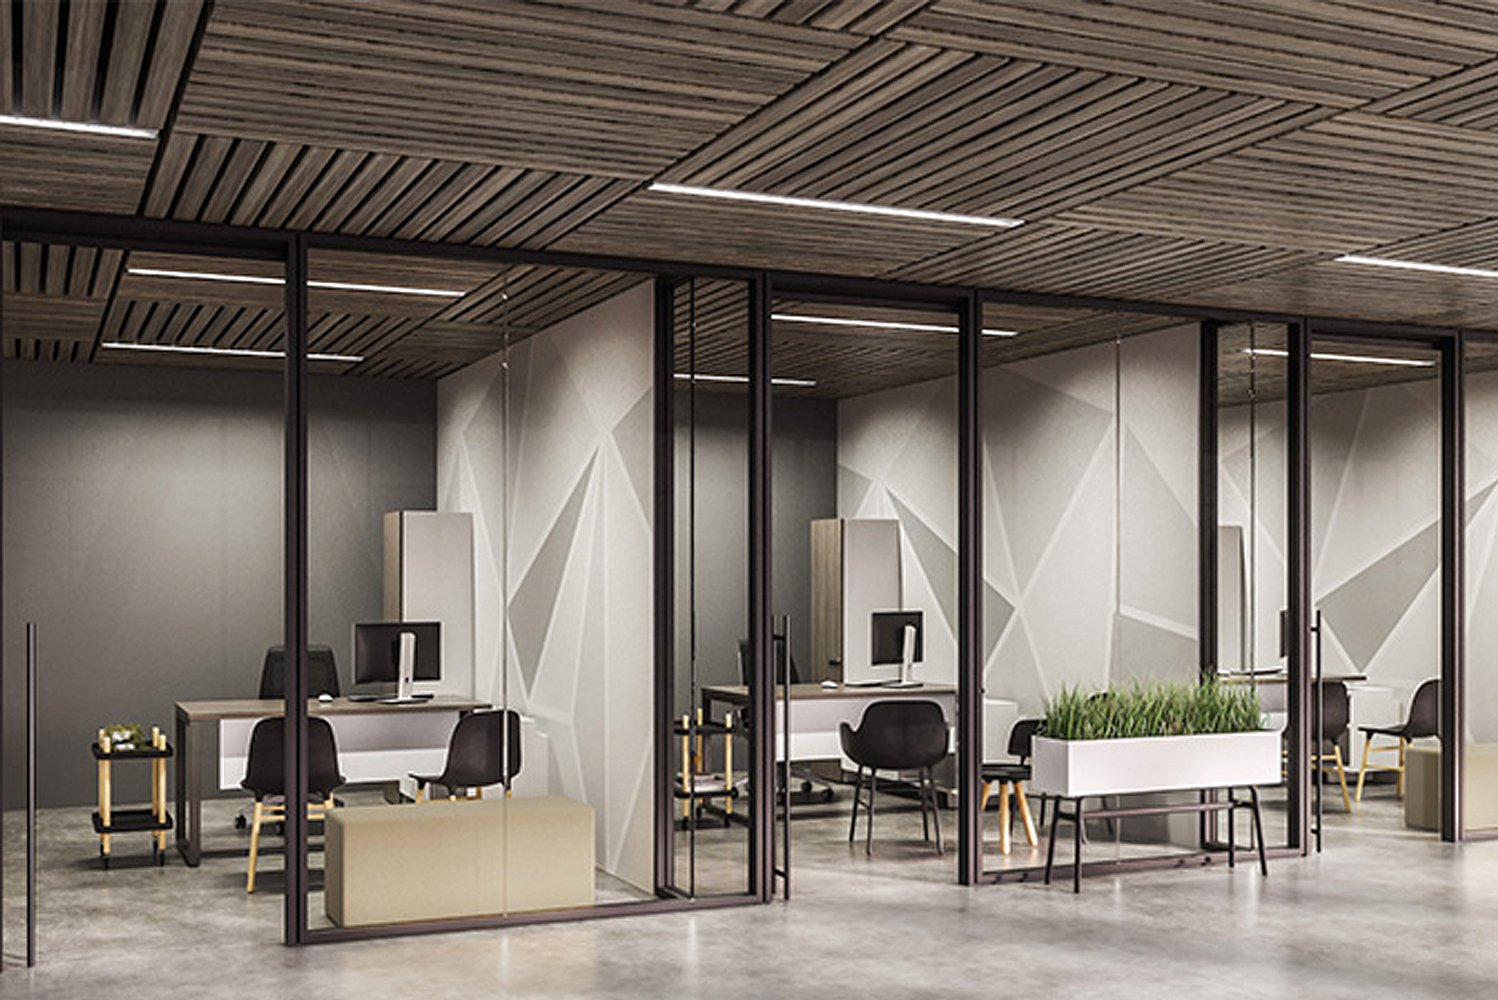 Aspect is a frameless glass partition system that provides refined aesthetics and enhanced acoustical privacy.